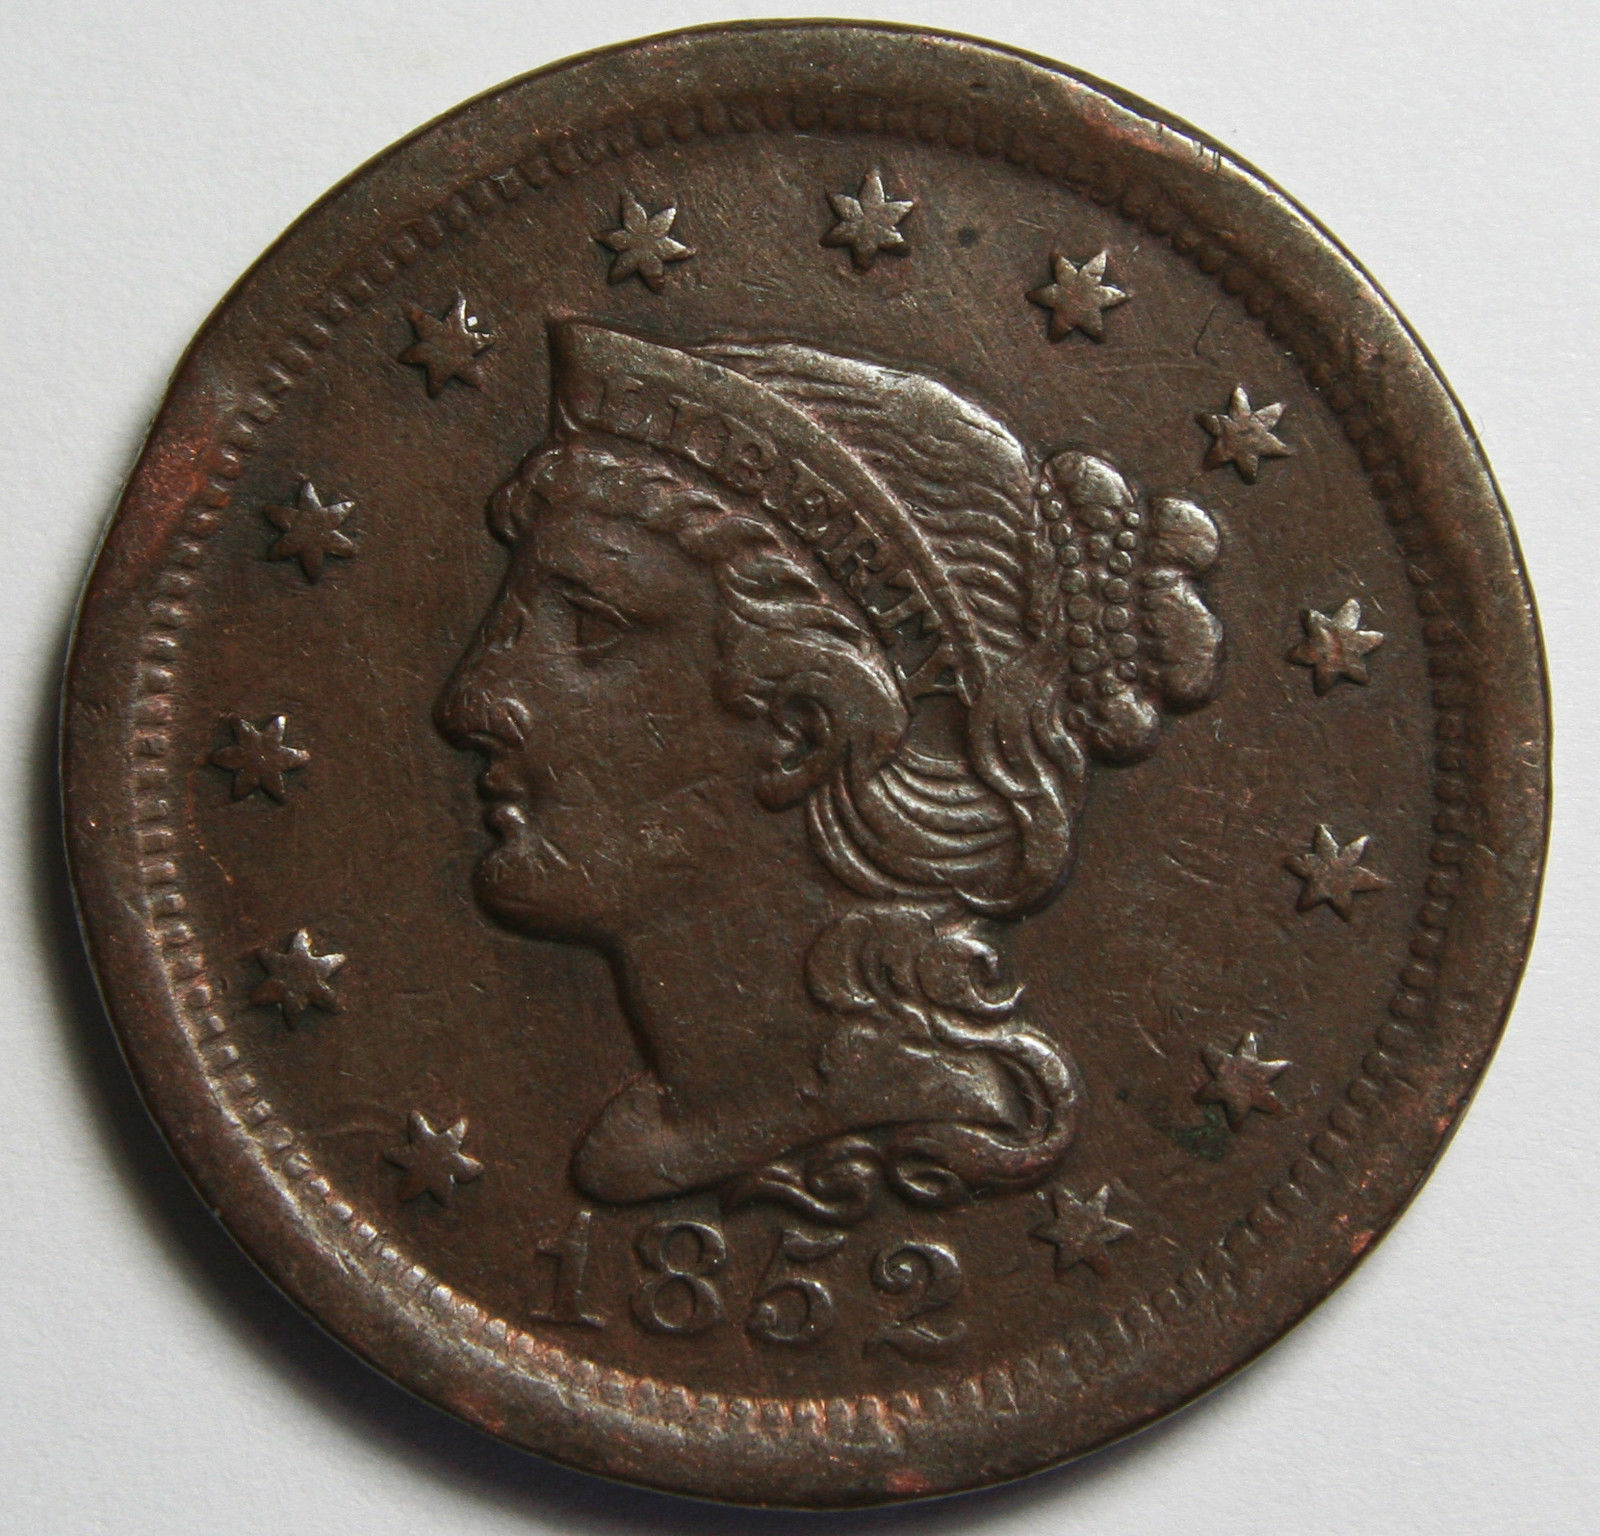 1852 Large Cent Liberty Braided Hair Head Coin Lot # MZ 4101